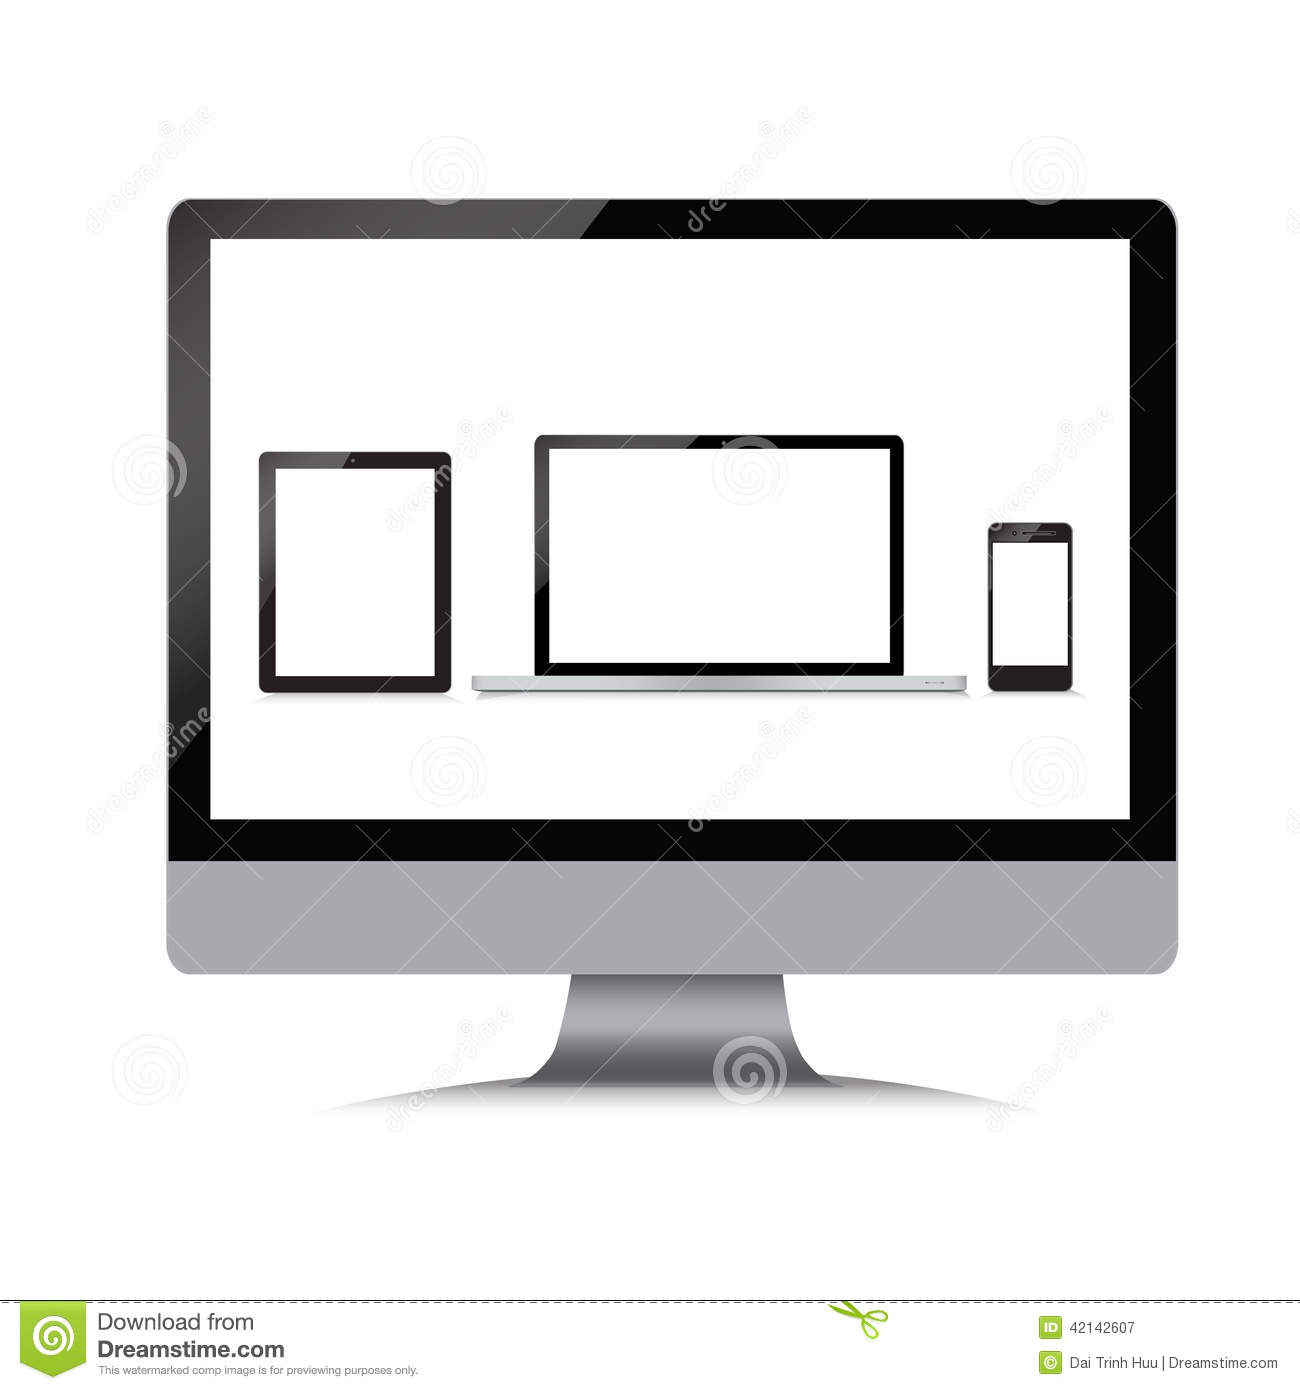 moniteur ordinateur portable t l phone comprim sur un blanc illustration de vecteur image. Black Bedroom Furniture Sets. Home Design Ideas